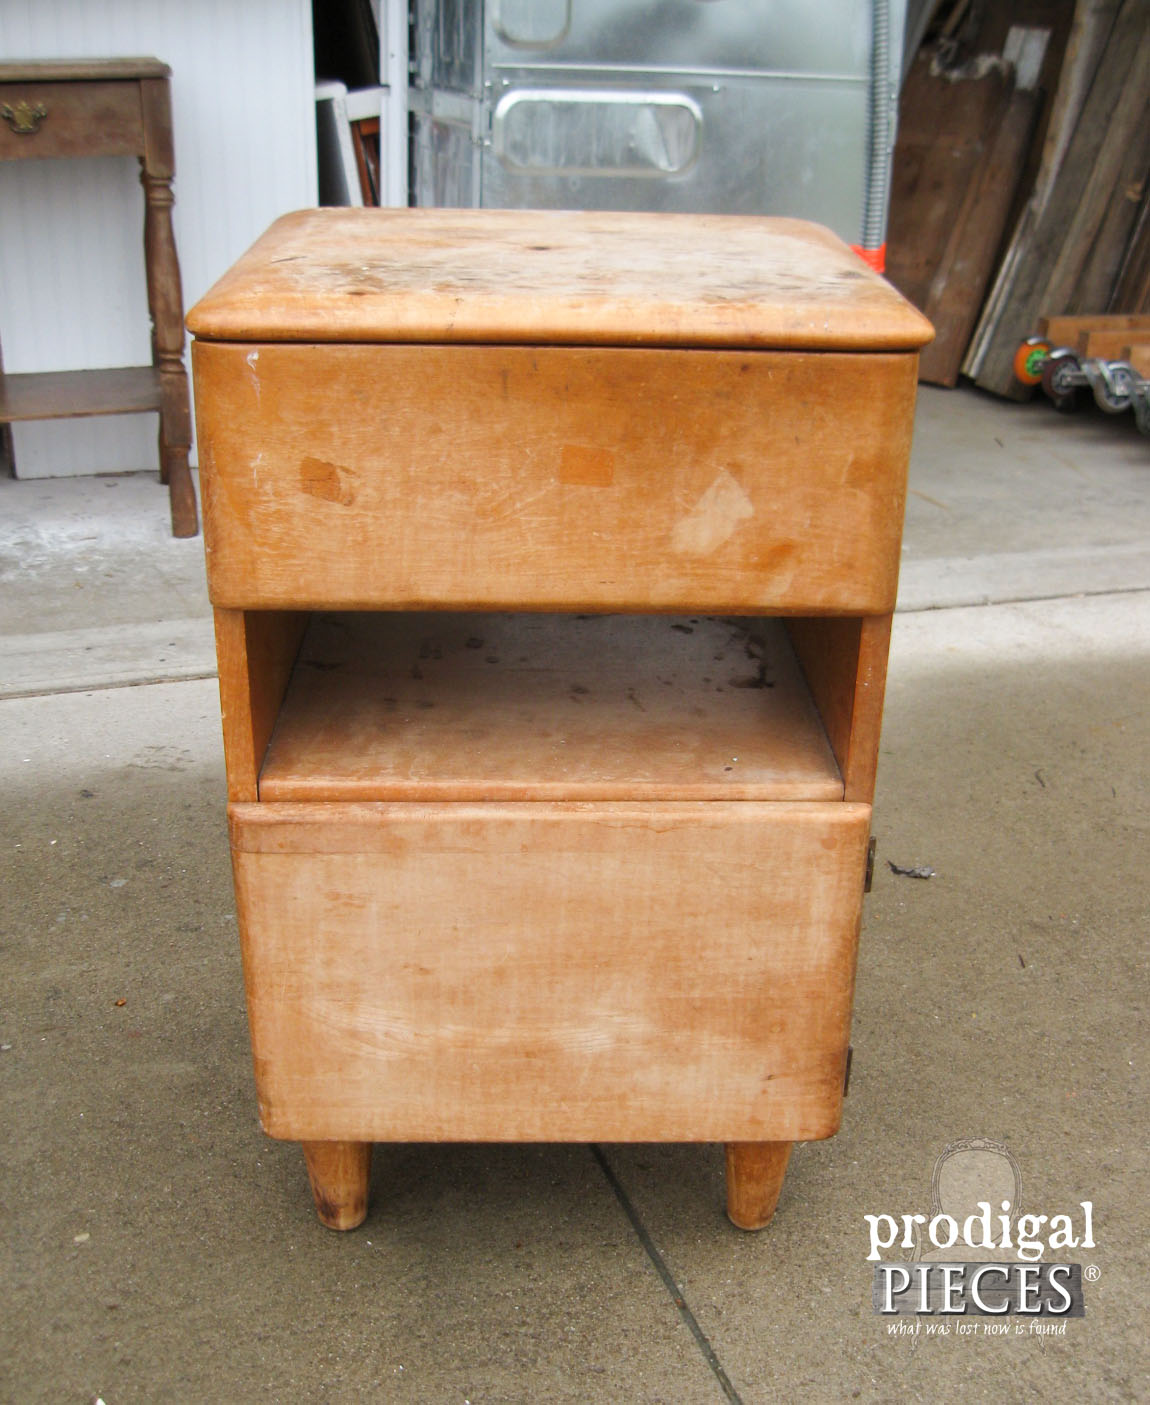 Art Deco Nightstand Before Makeover | Prodigal Pieces | www.prodigalpieces.com